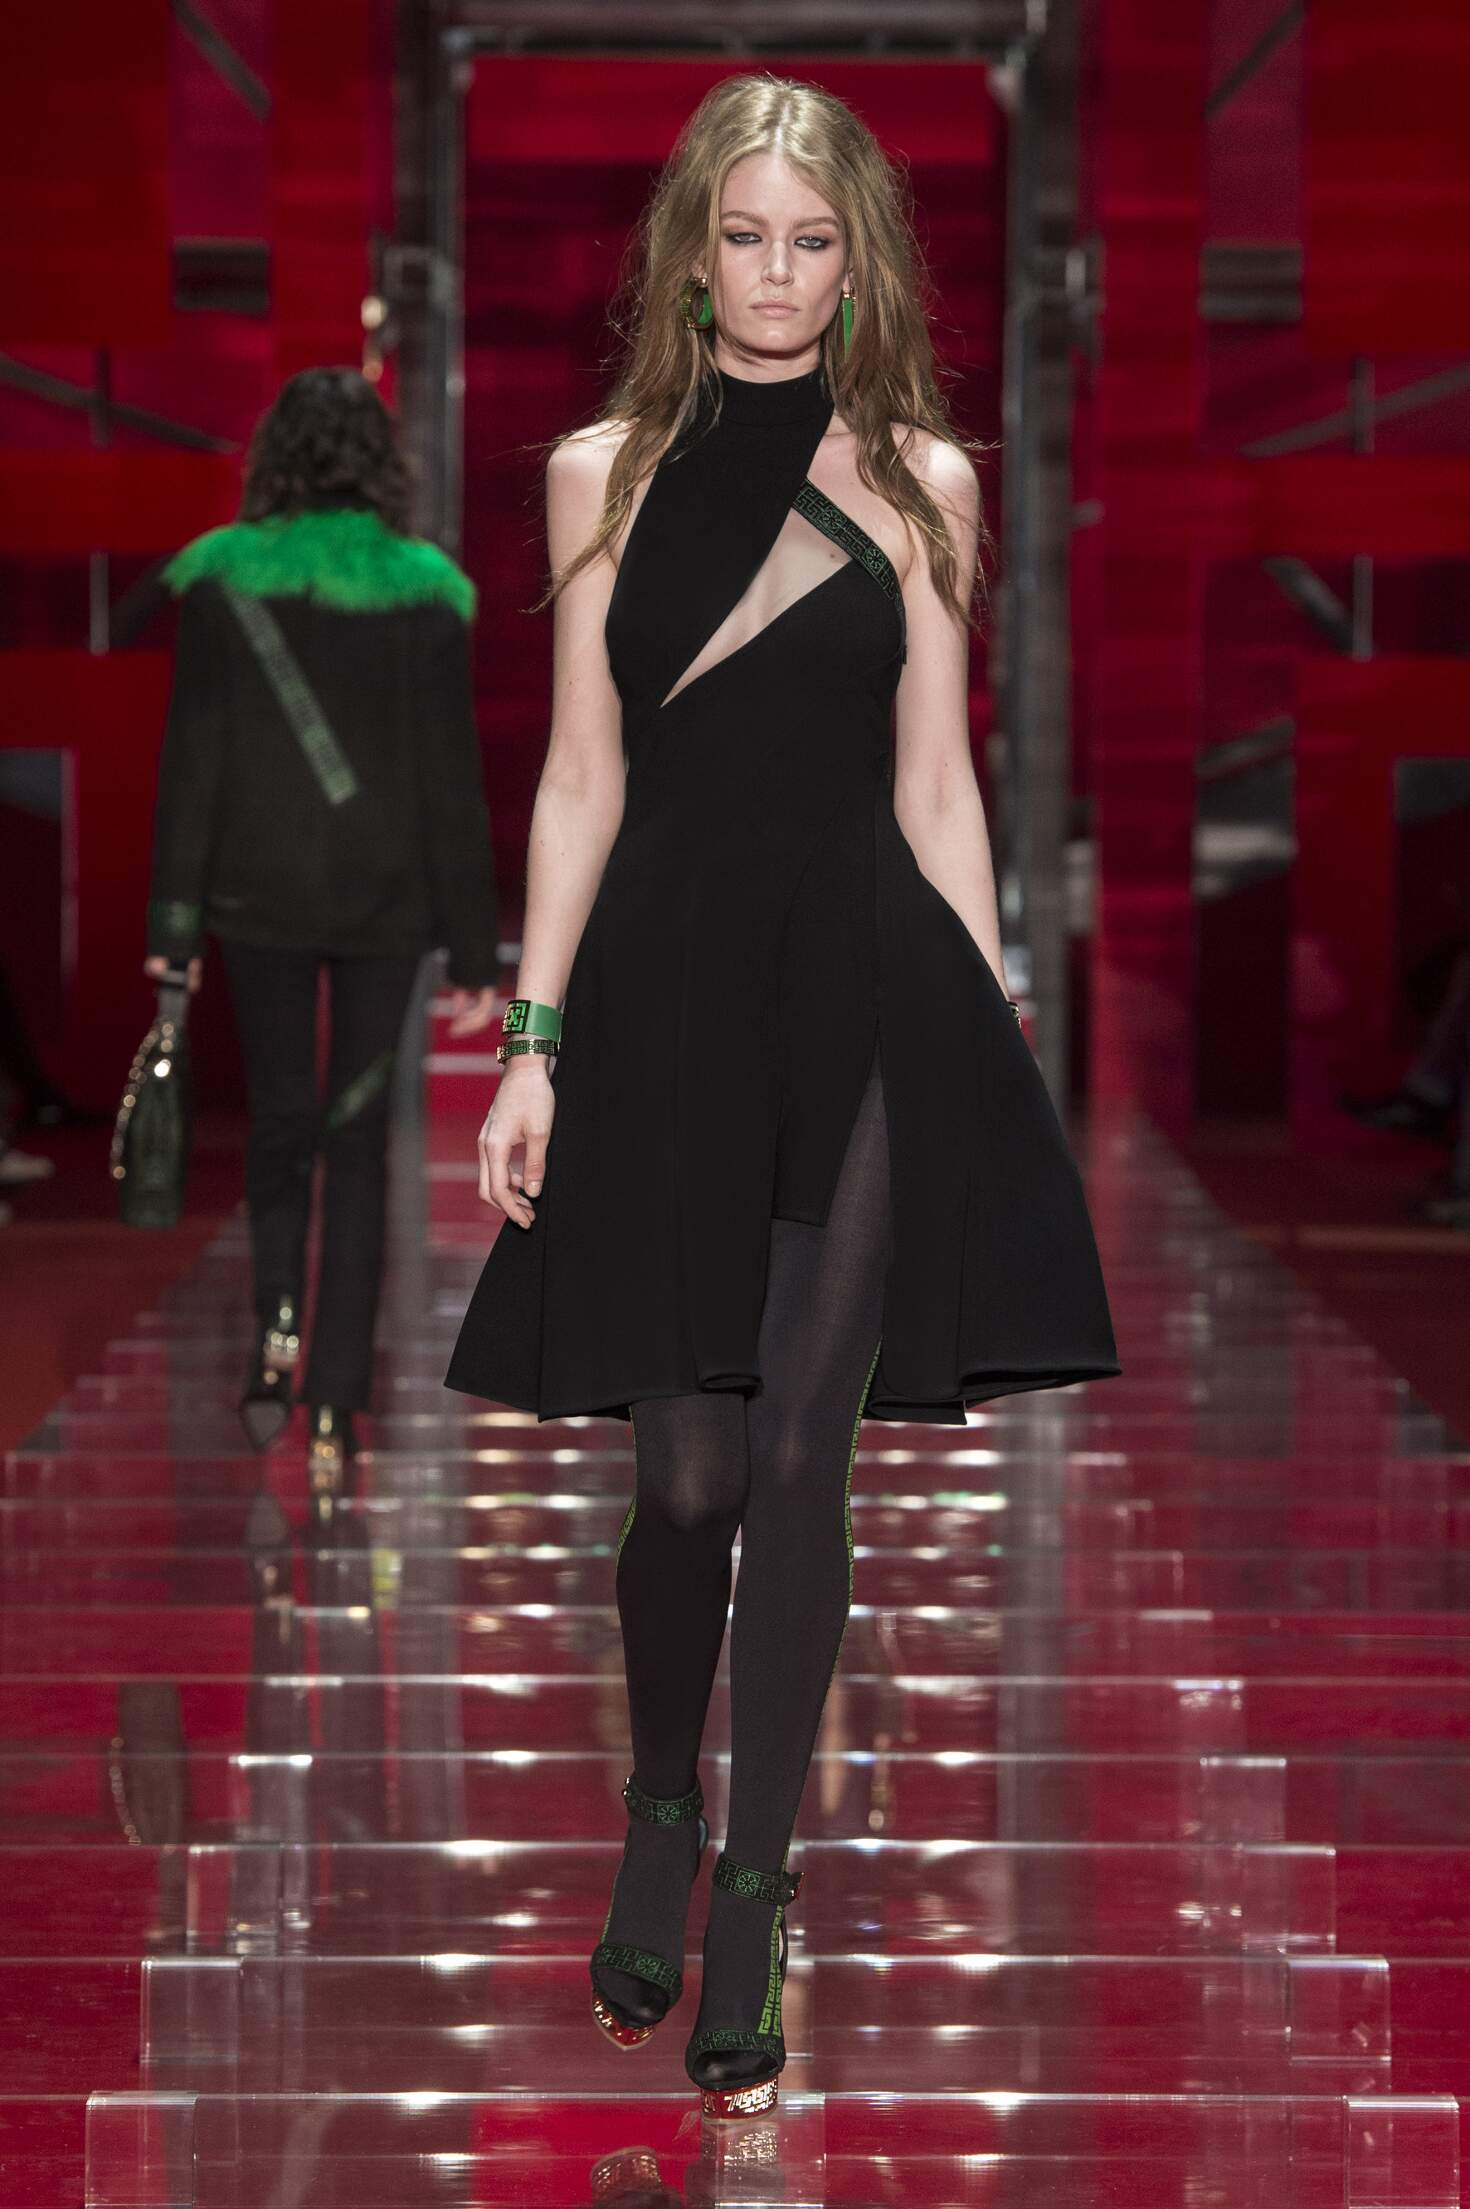 2015 Fashion Woman Model Versace Collection Catwalk